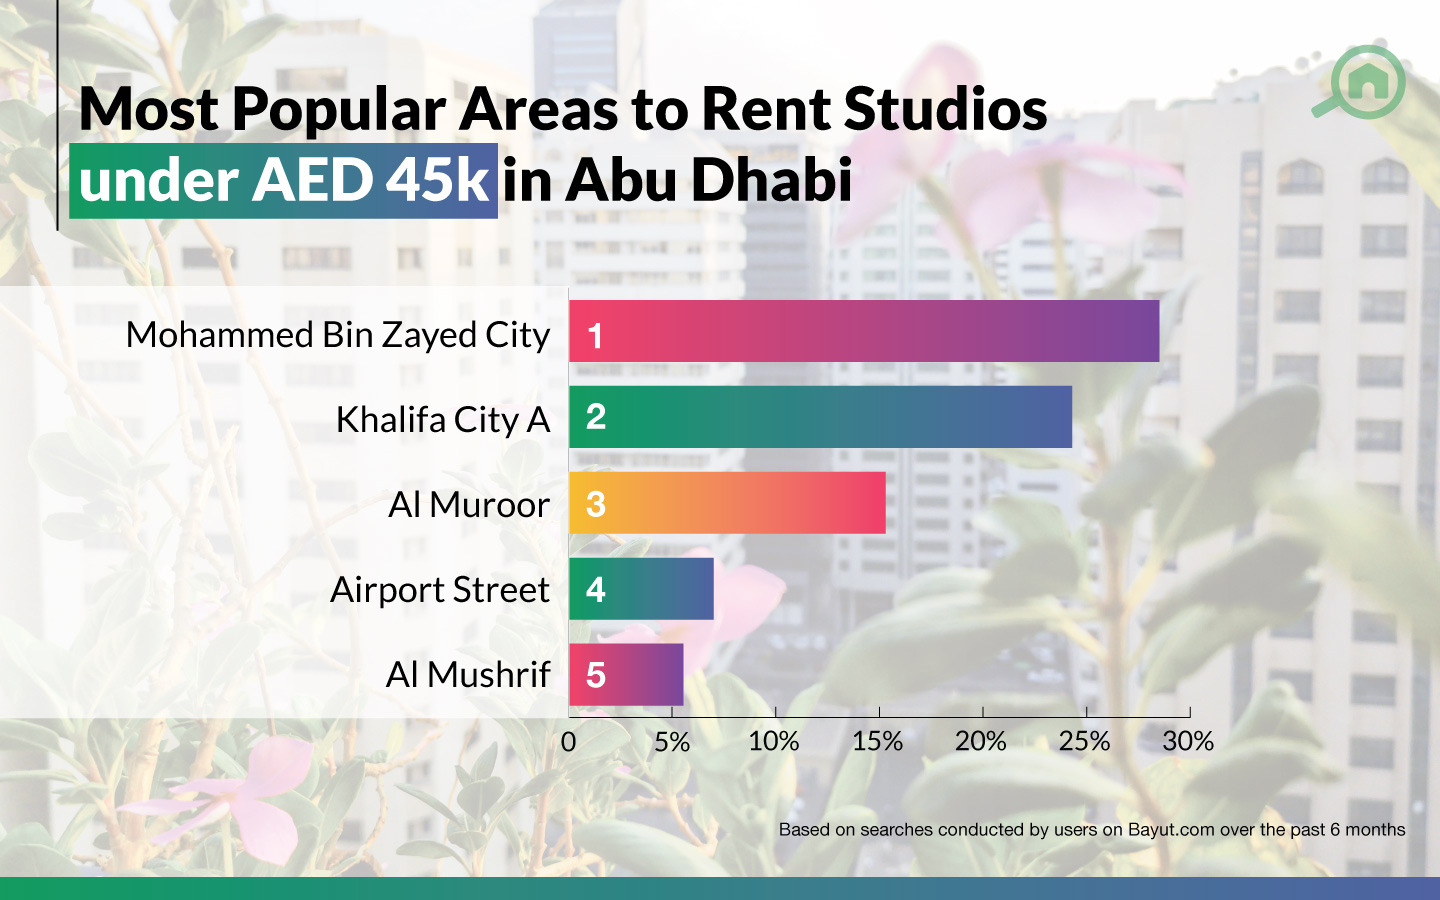 popular areas to rent studios in Abu Dhabi under AED 45k